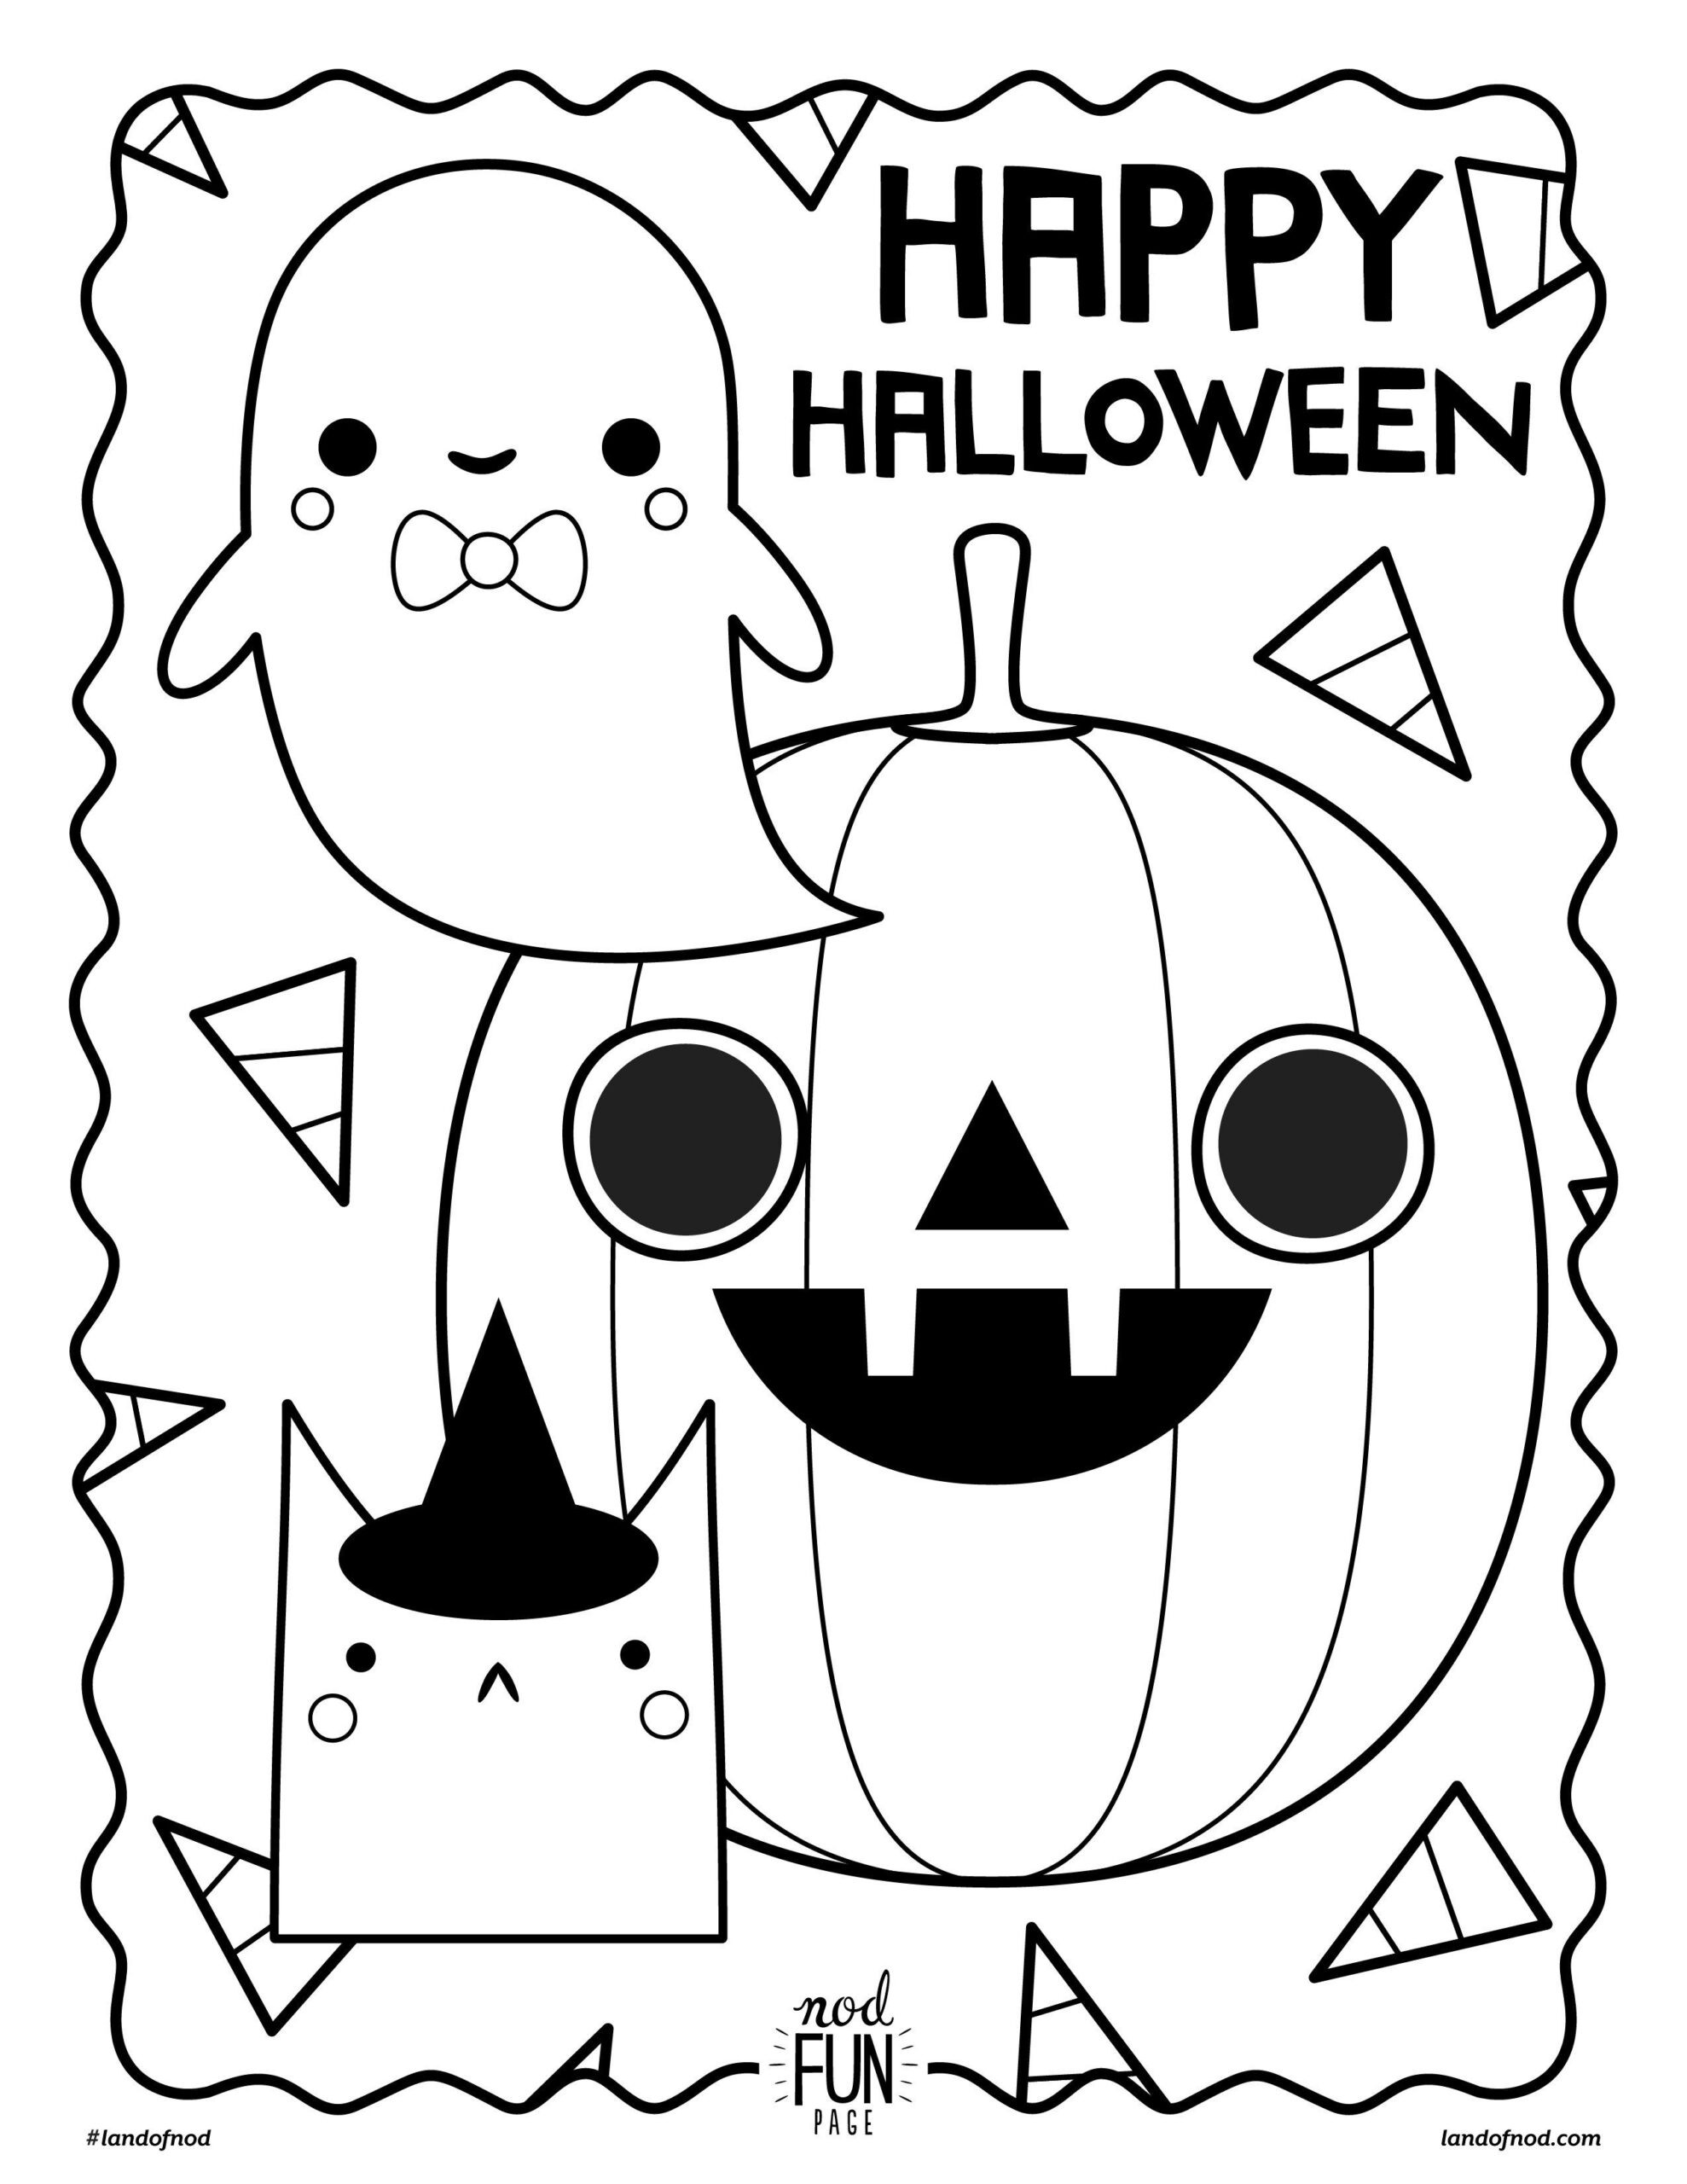 Preschool Halloween Worksheets Free Marvelous Art Coloring Pages for Preschoolers Preschool